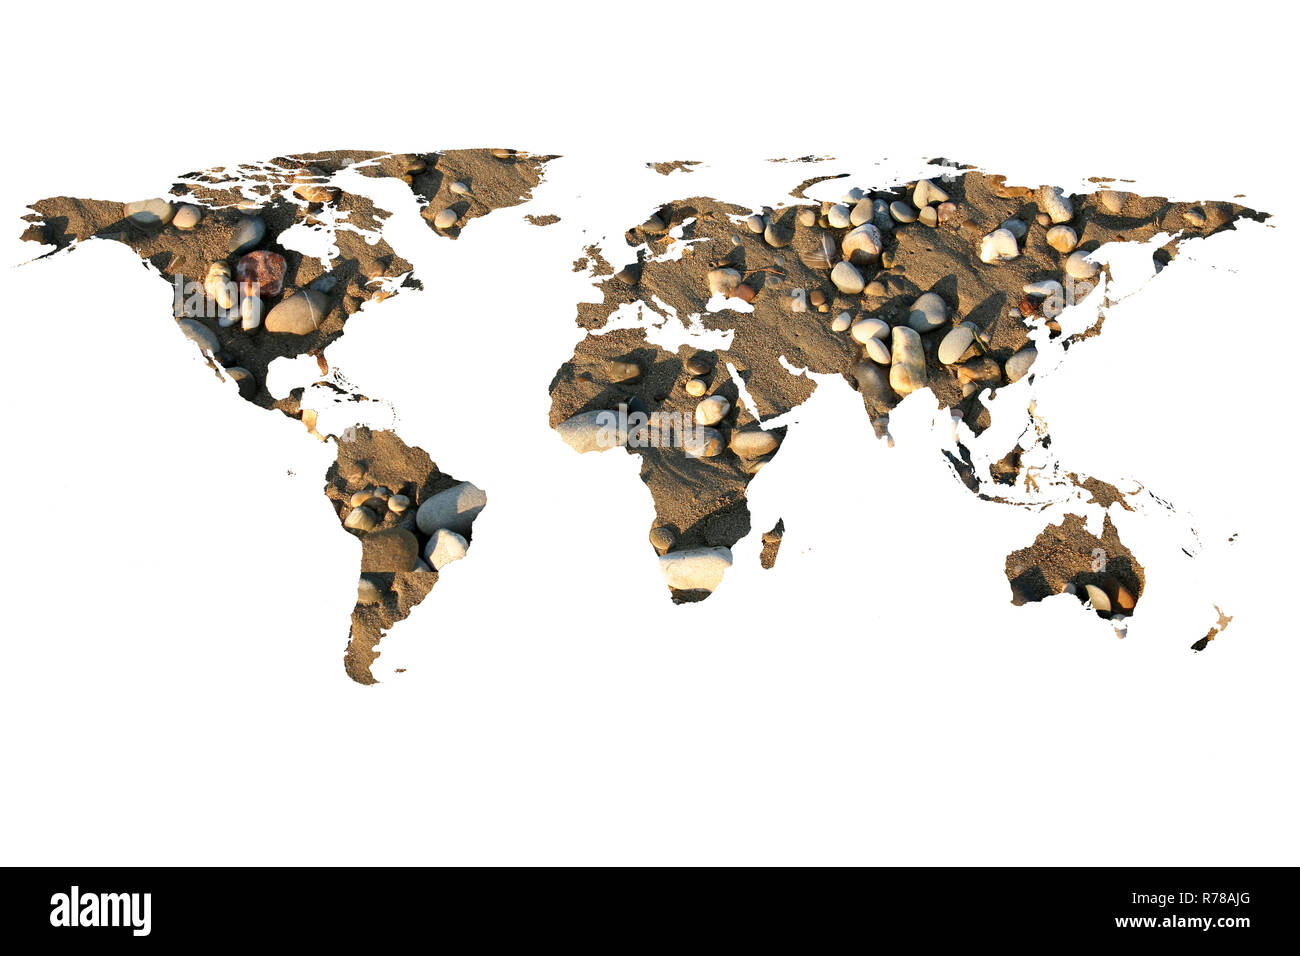 world map and stones - Stock Image